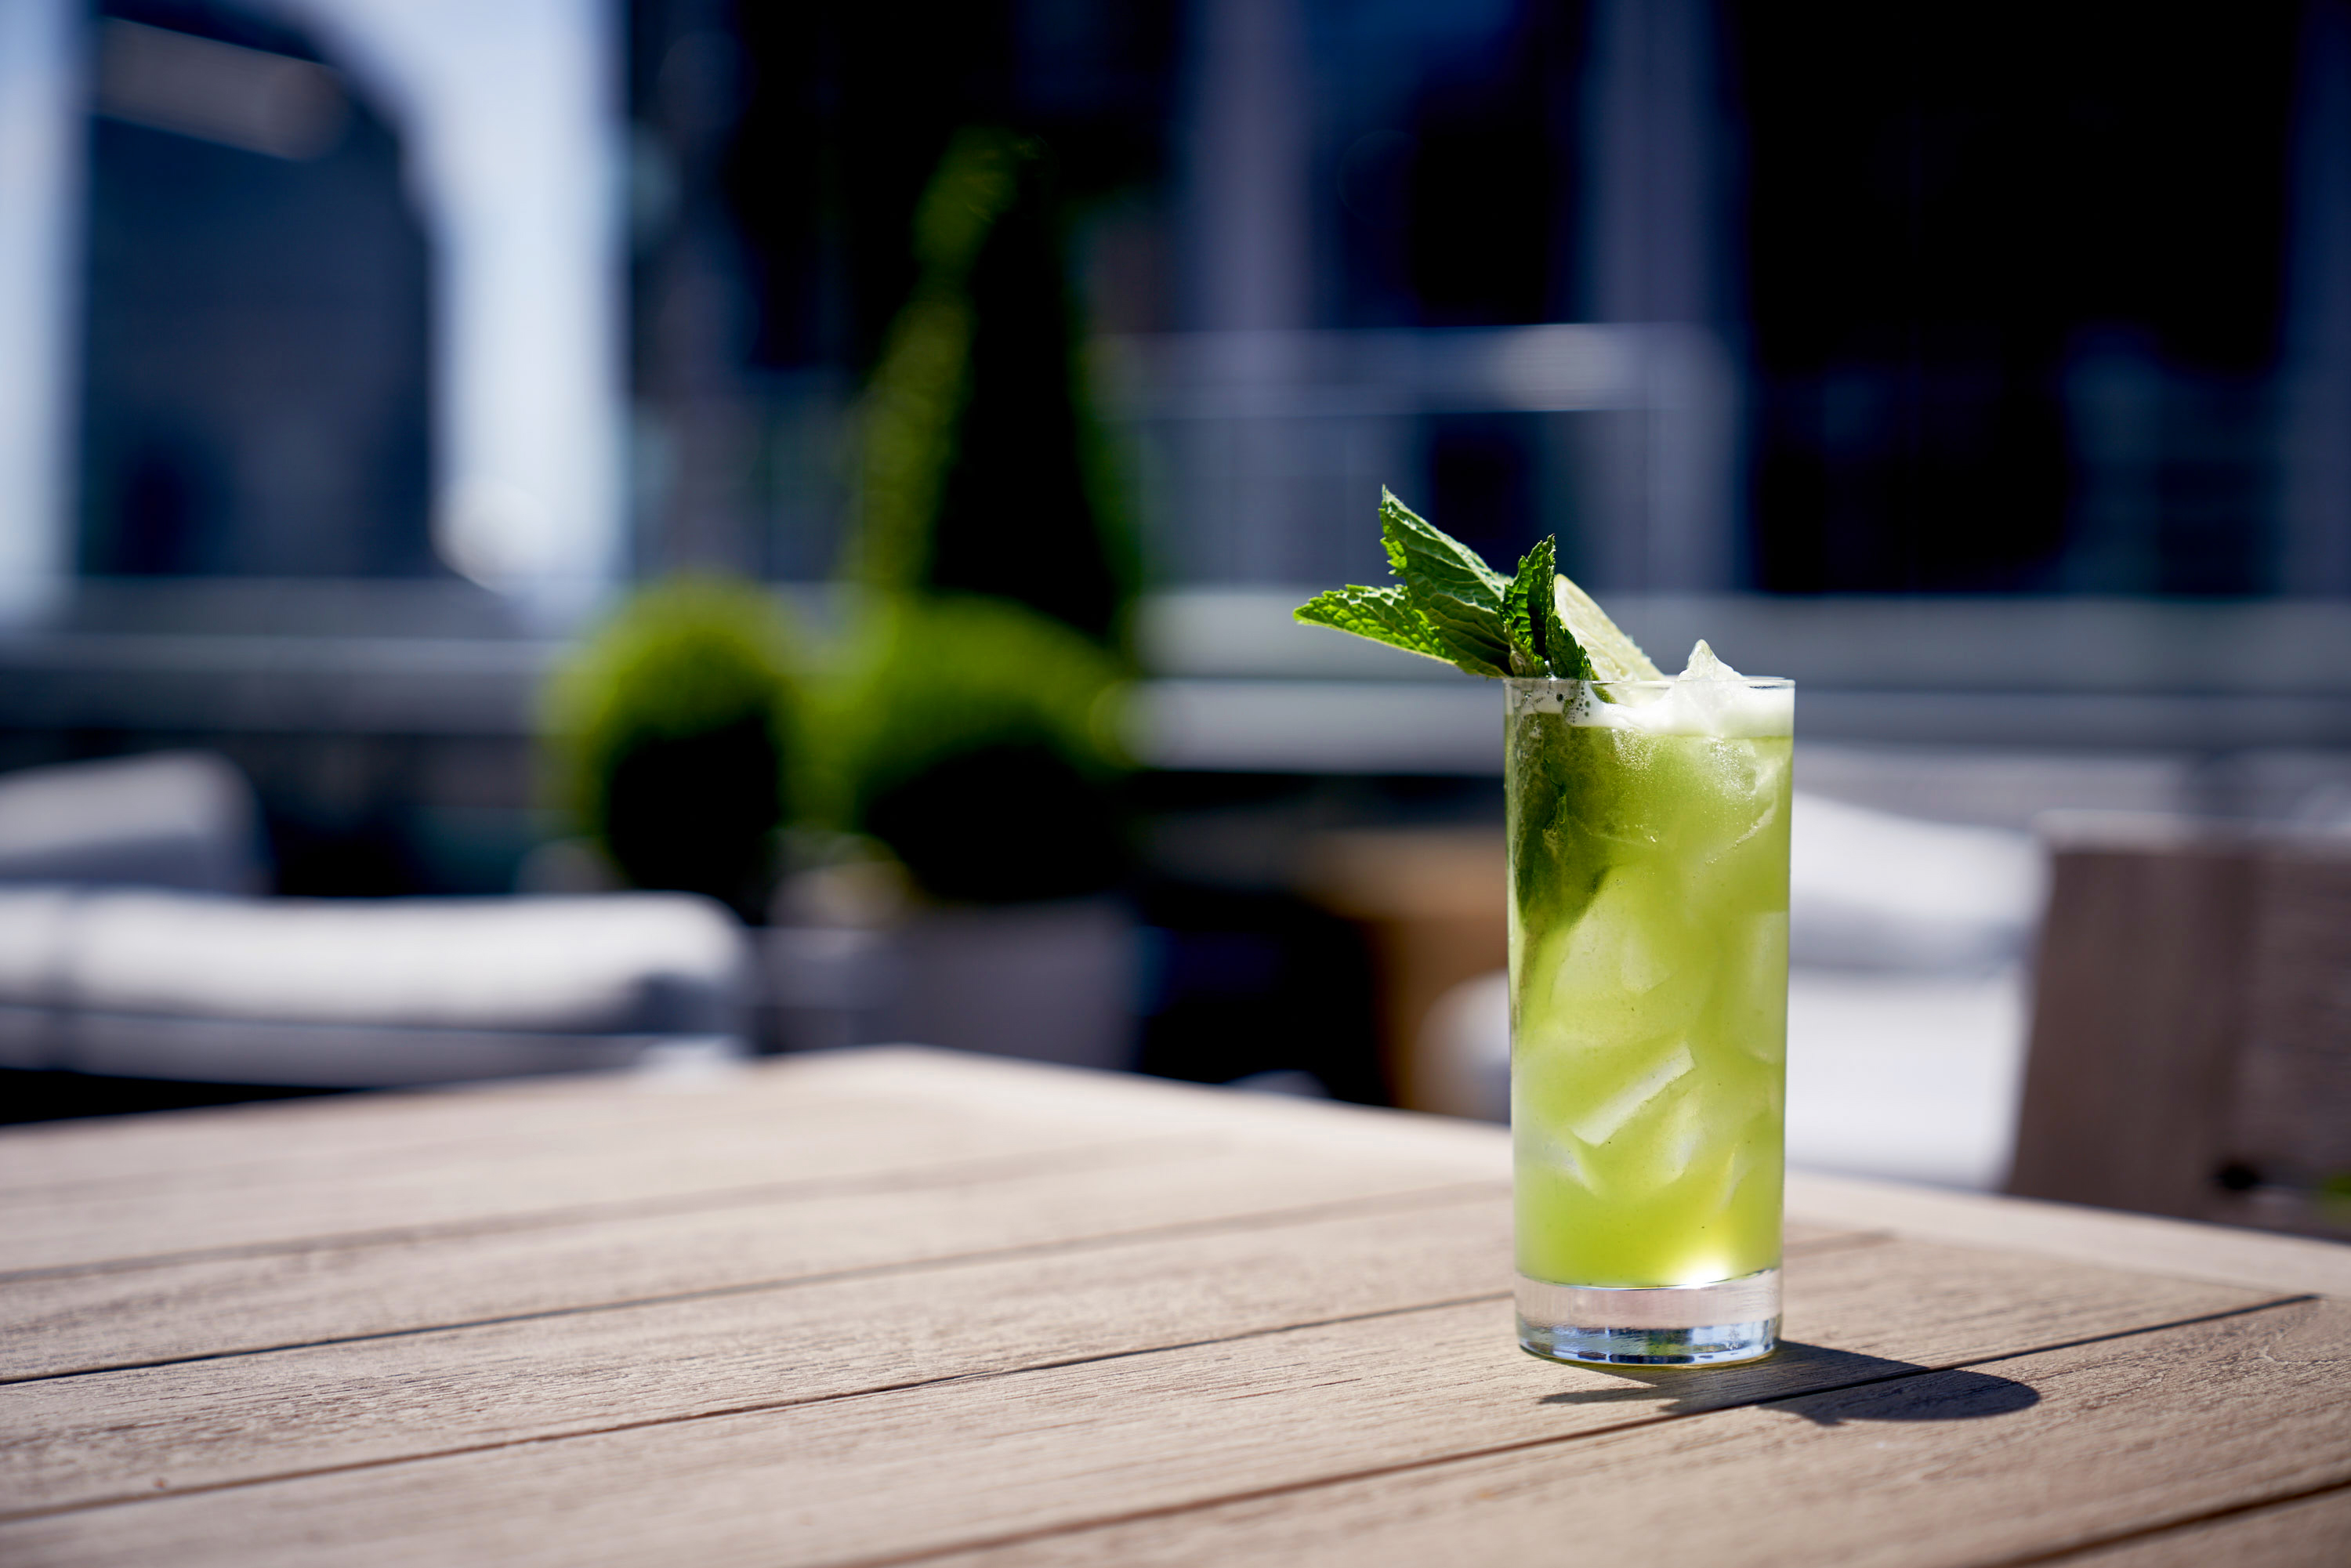 Get Sophisticated (and Intoxicated) at These Chic Bars in Midtown Manhattan!